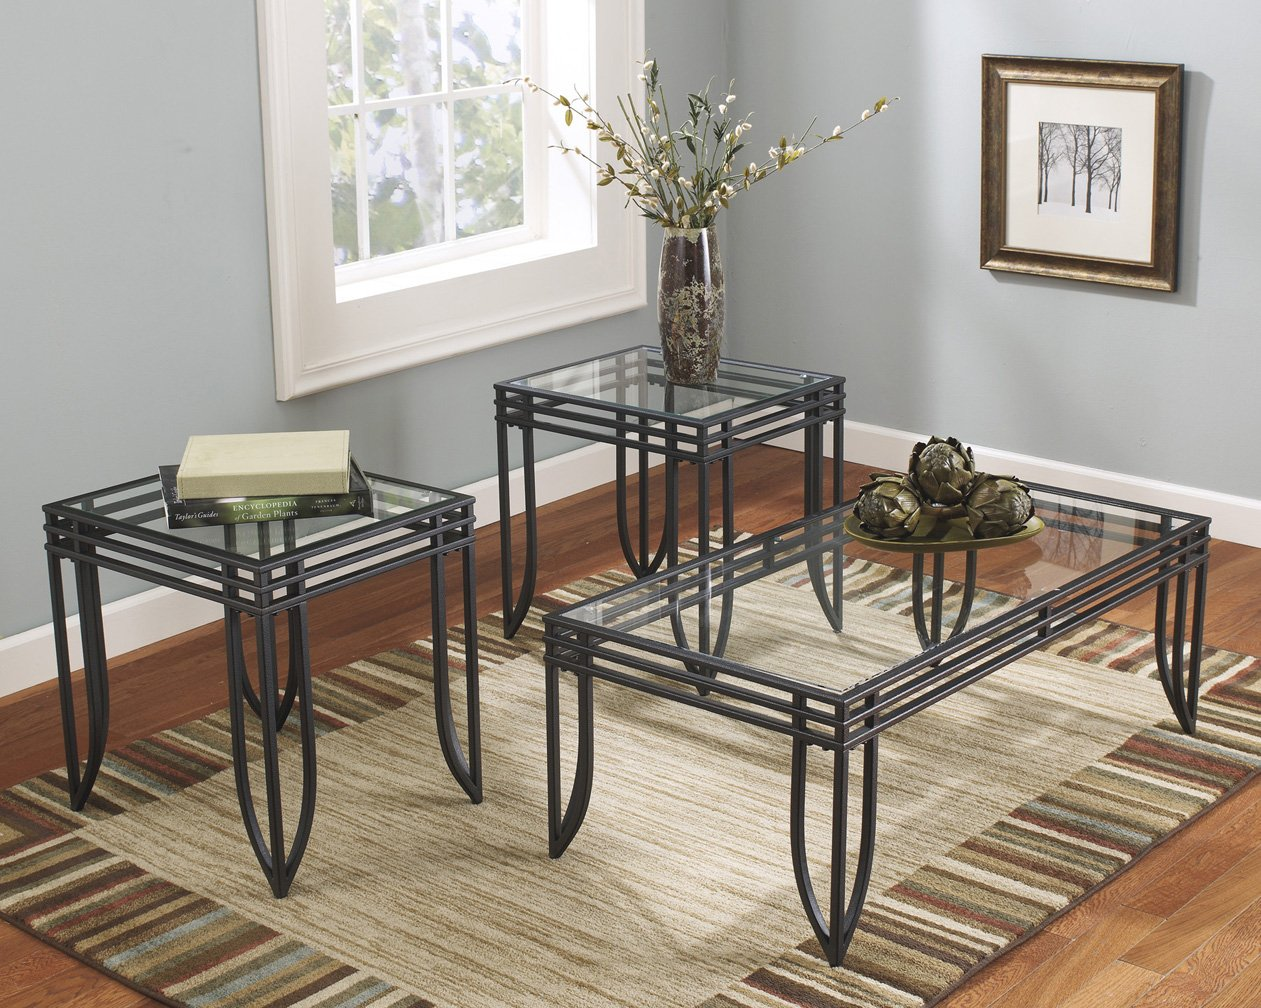 Amazon com  Roundhill Furniture 3307 Matrix 3 in 1 Metal Frame Accent Coffee and 2 End Table Set Kitchen Dining